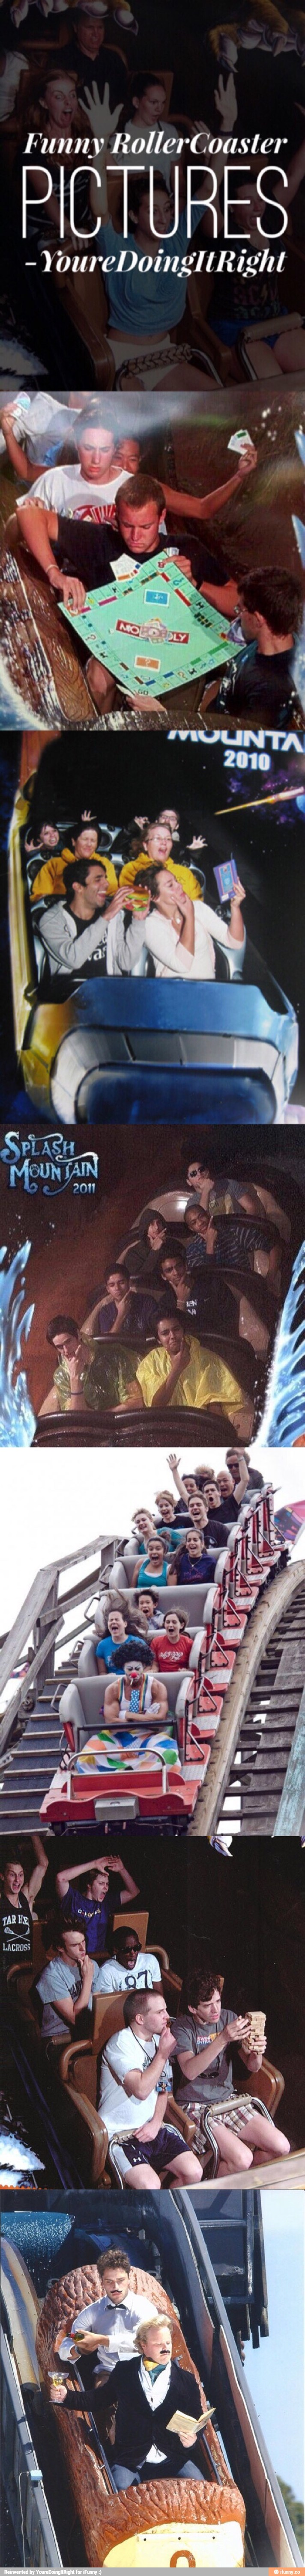 funny-roller-coaster-pictures